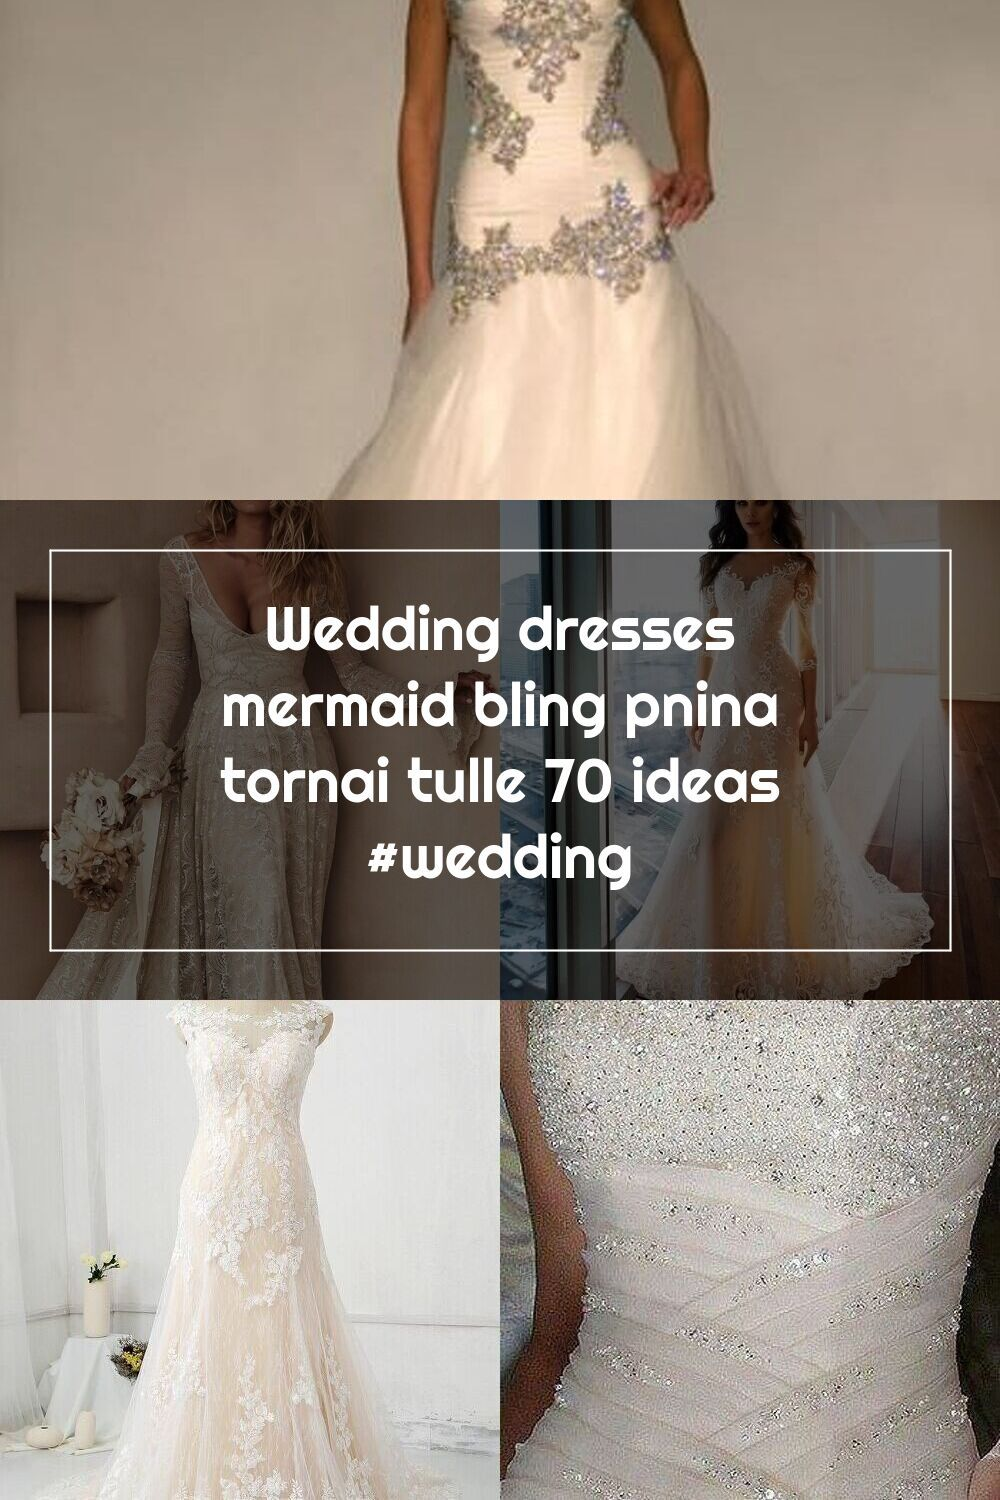 Wedding Dresses Mermaid Bling Pnina Tornai Tulle 70 Ideas Wedding In 2020 Wedding Dresses Mermaid Bling Wedding Dresses Dresses,Traditional Wedding Dresses For Mens In Sri Lanka